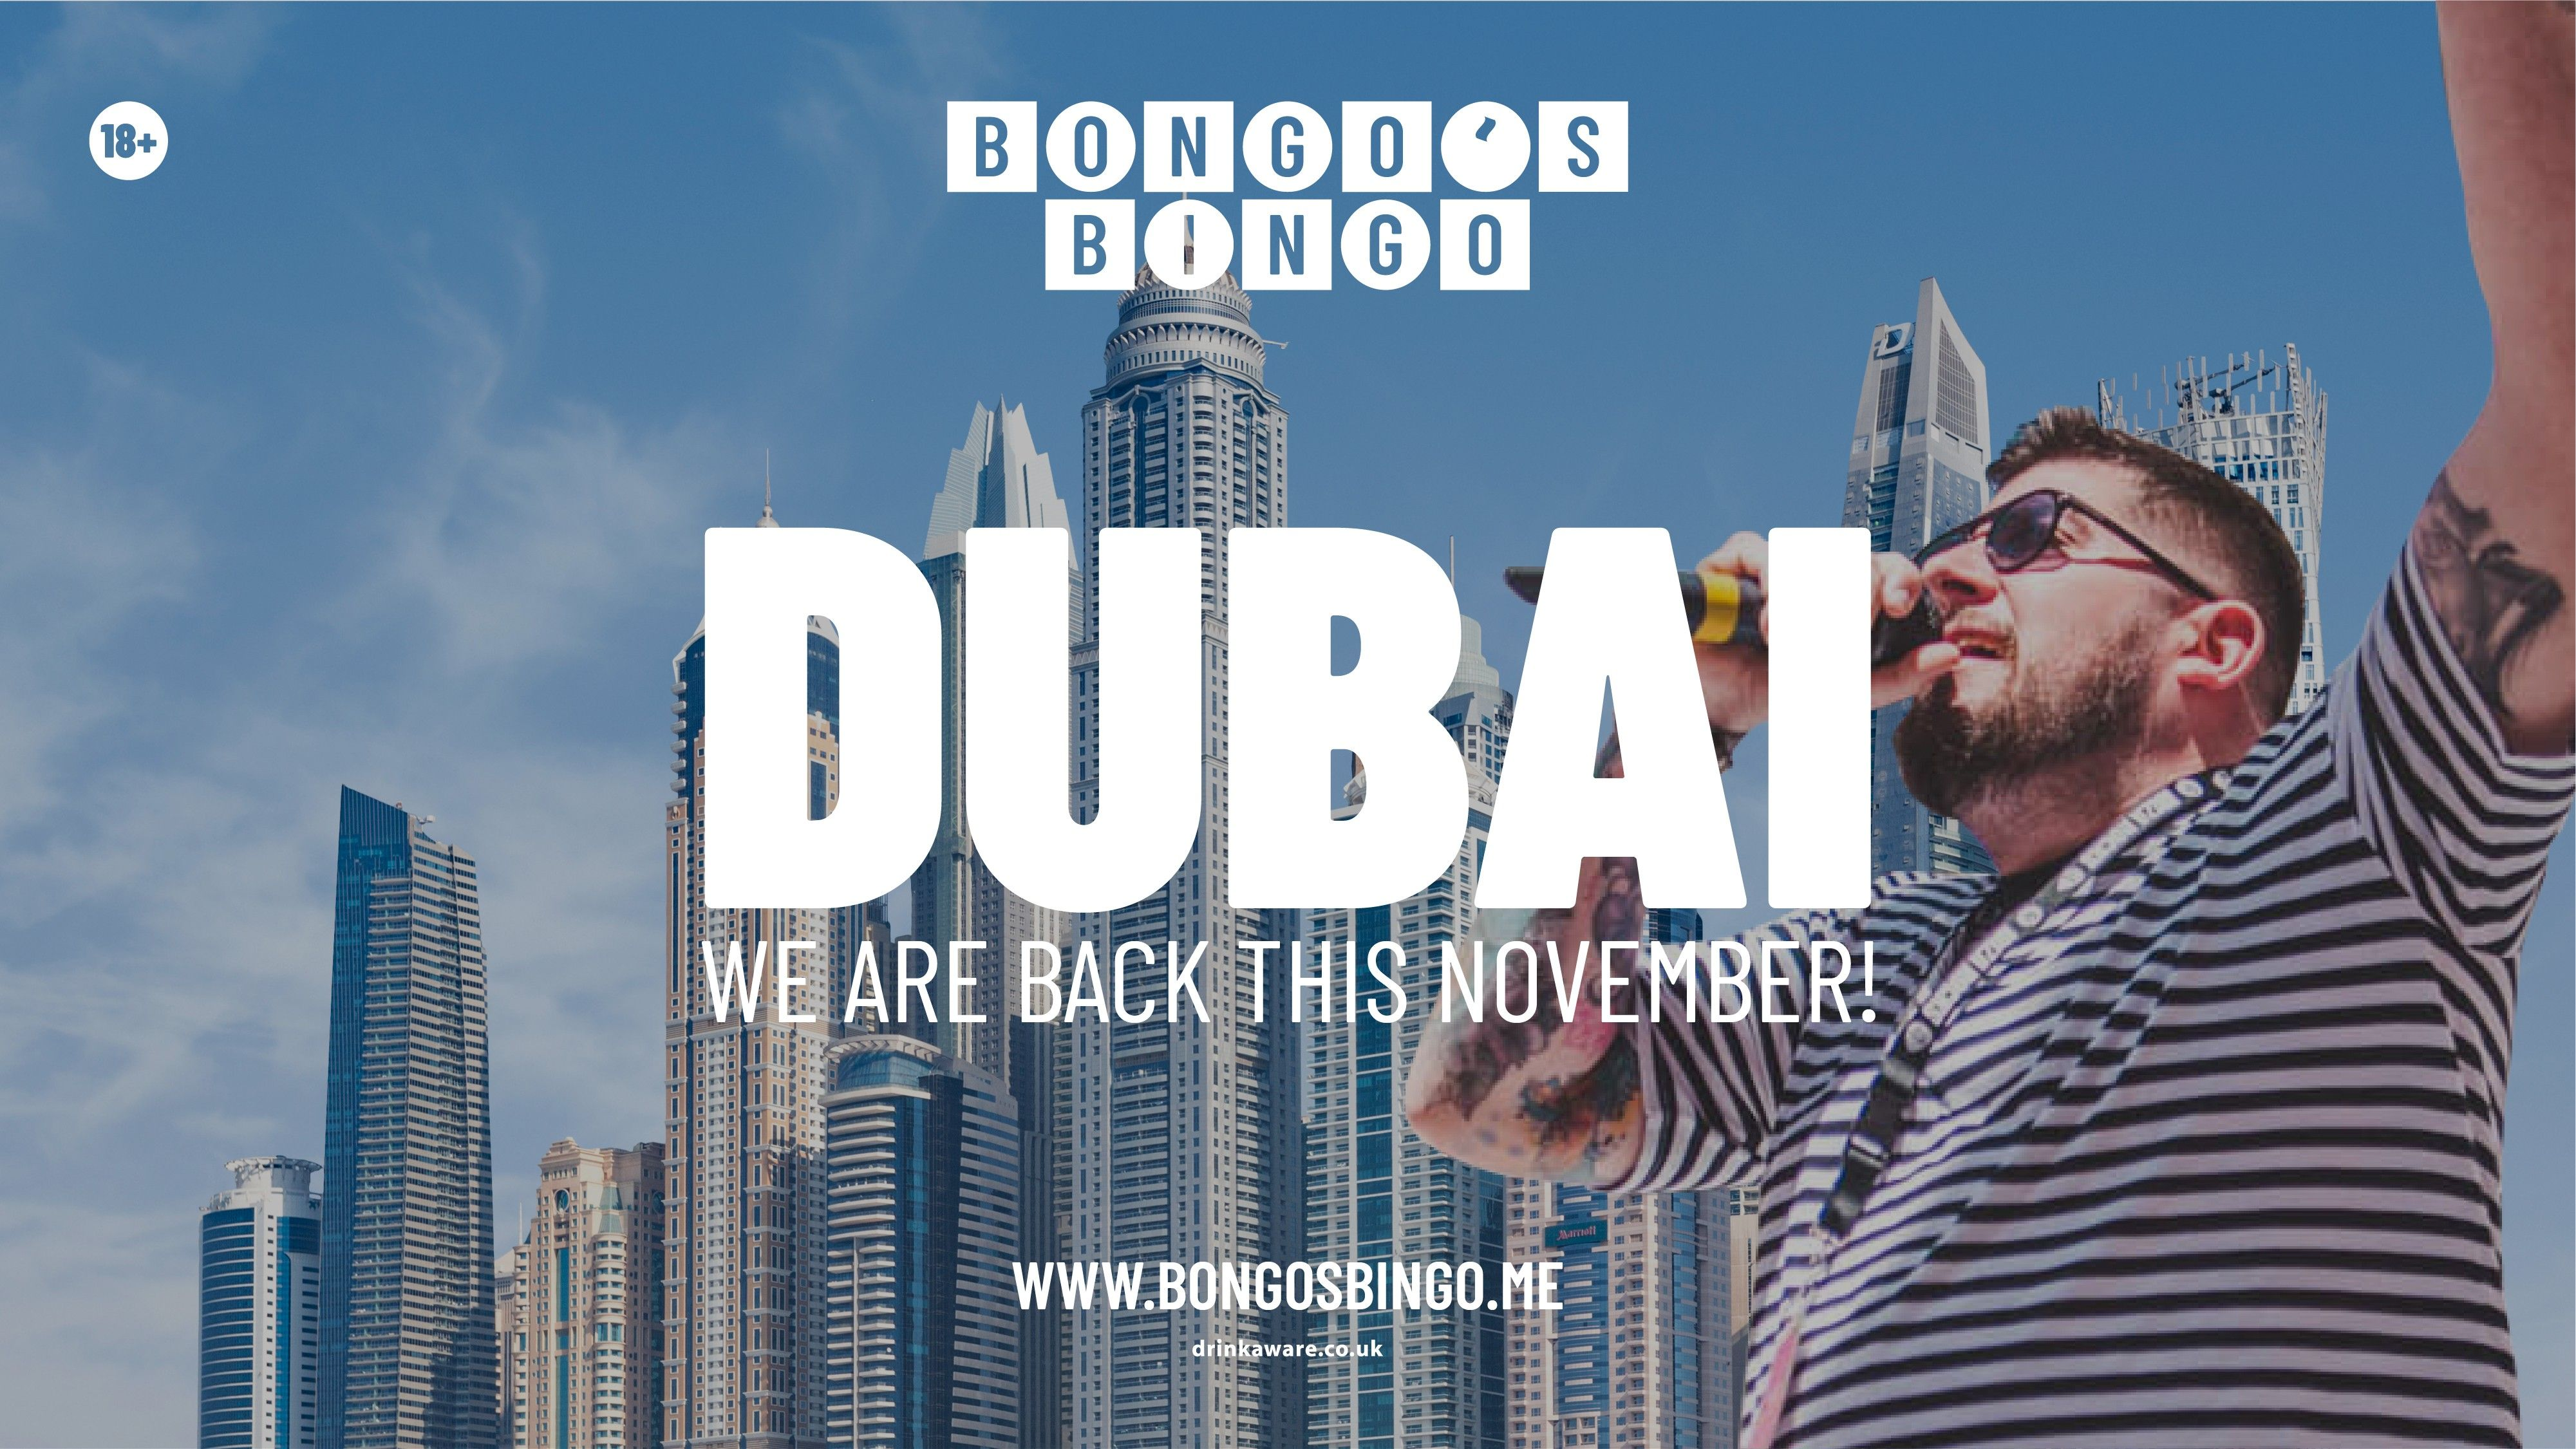 Bongo's Bingo is coming back to Dubai